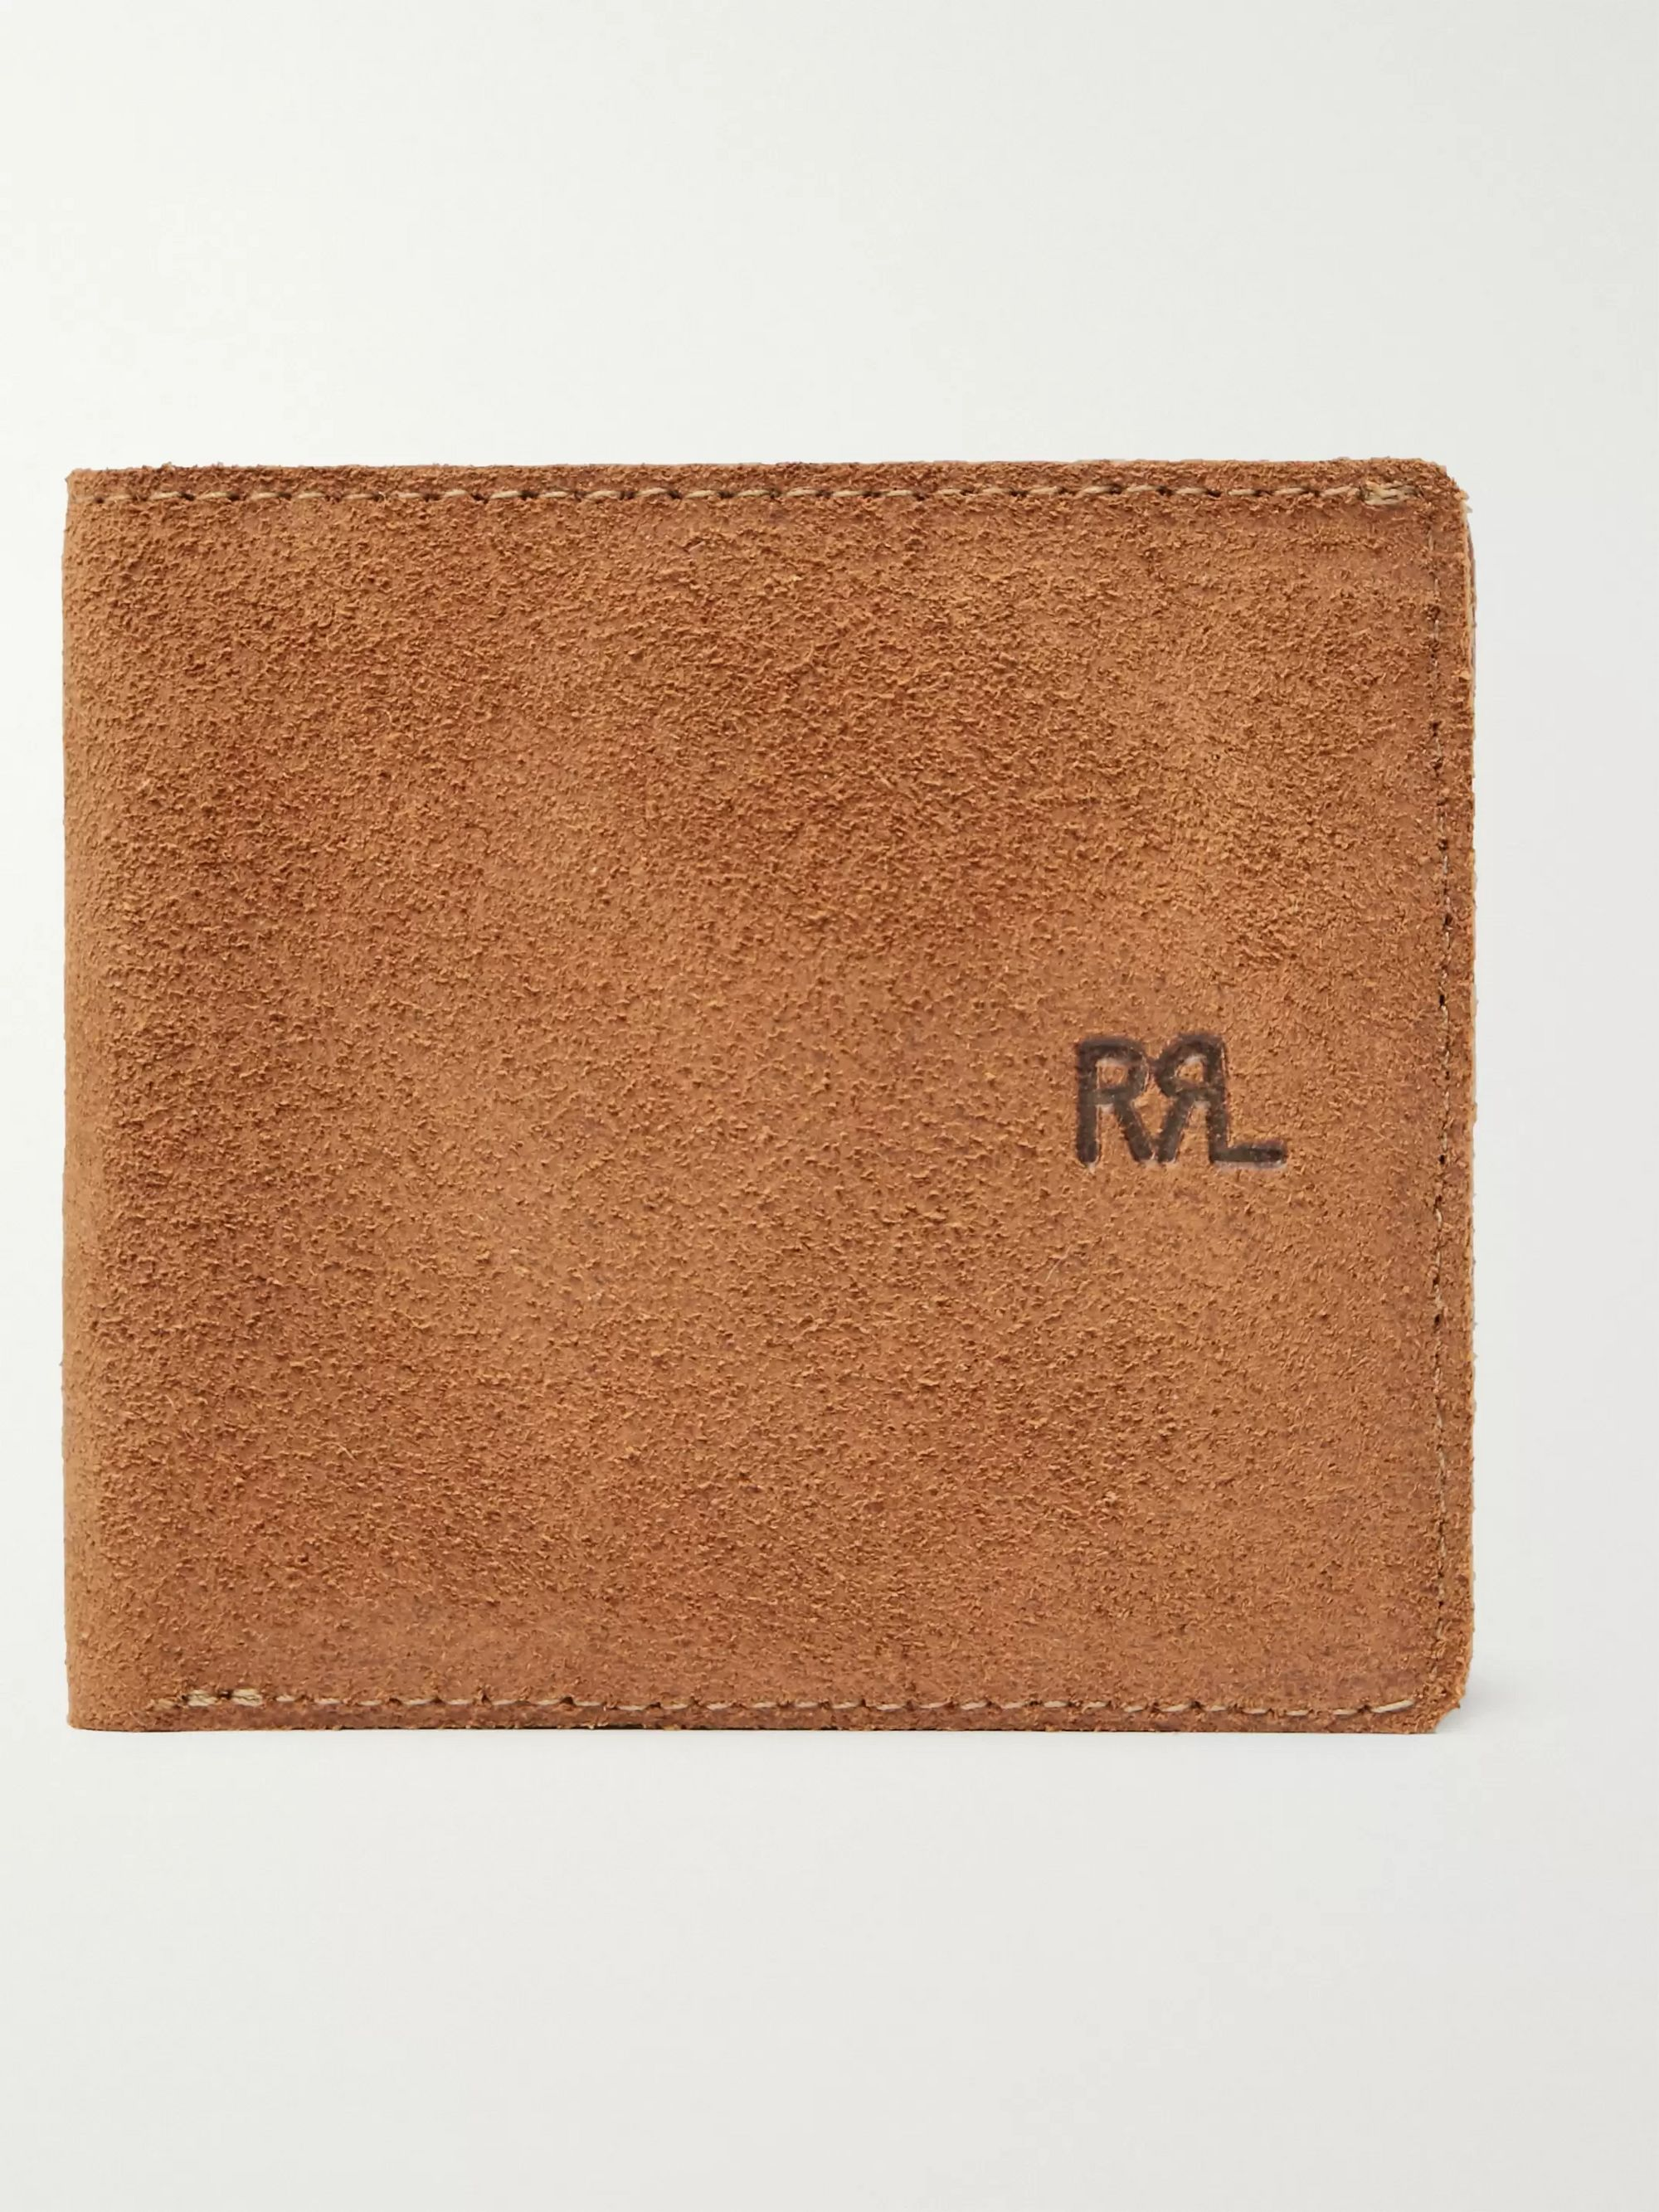 Ranch Suede Billfold Wallet by Rrl